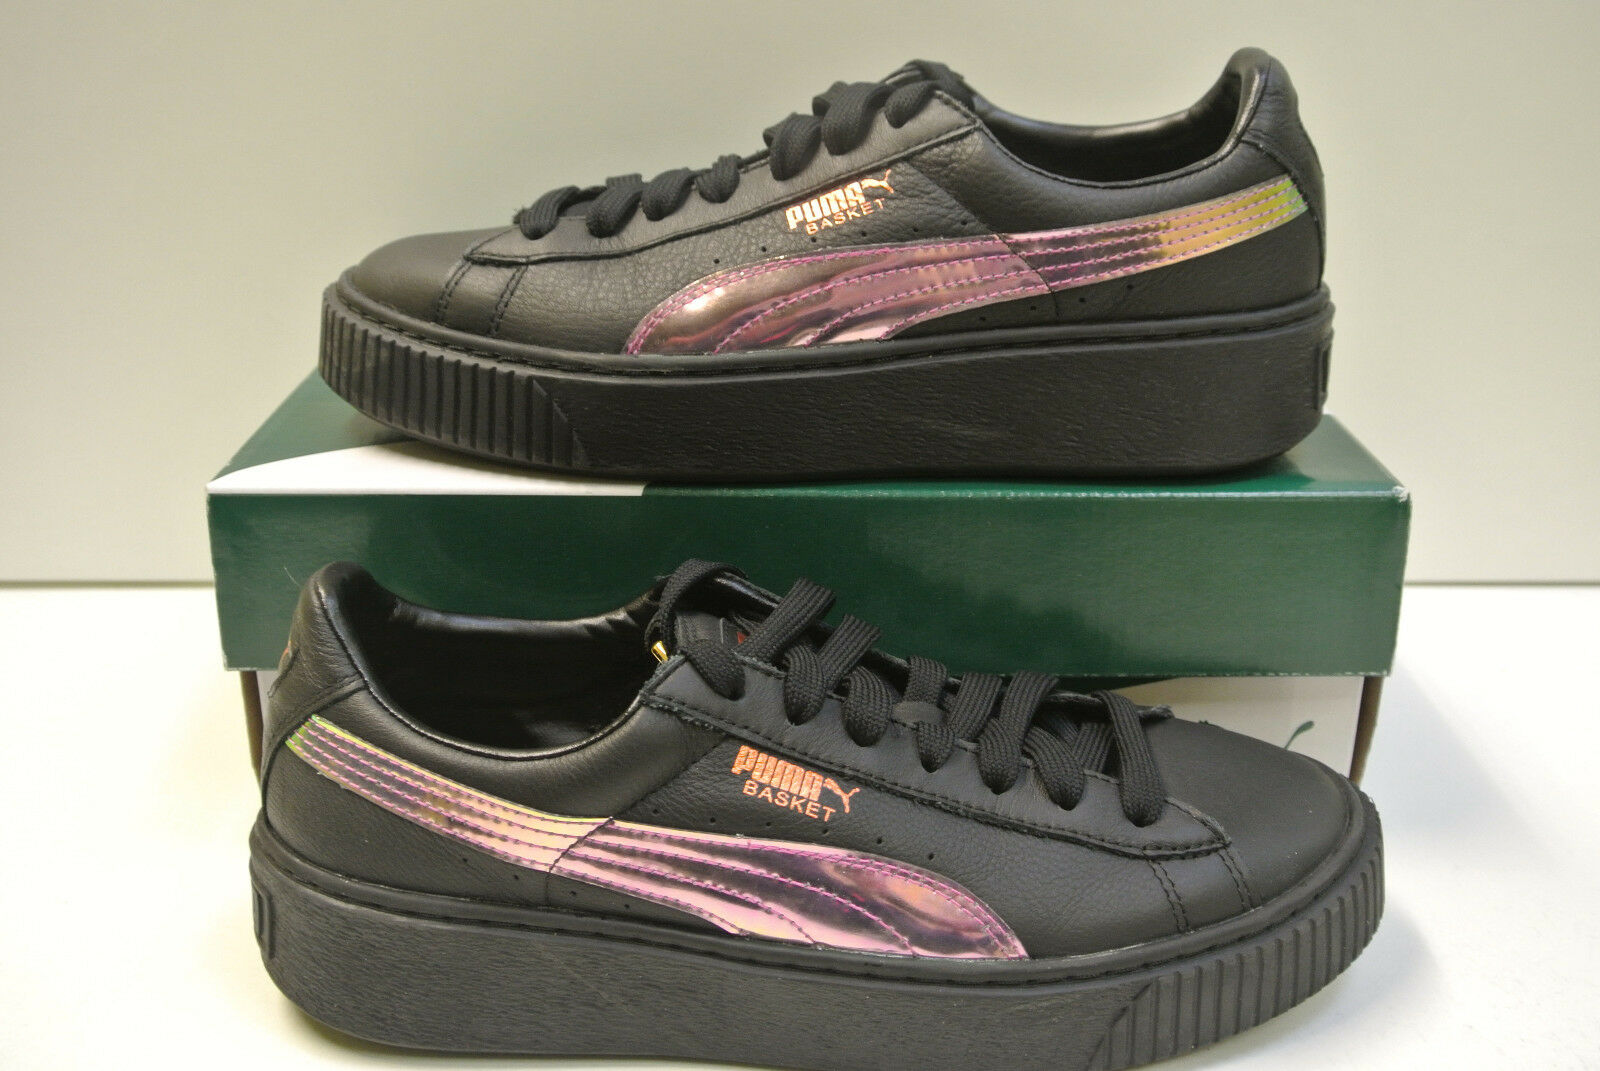 Puma Basket Platfrom Rainbow Jr Size Selectable New & Orig Pack 364529 01